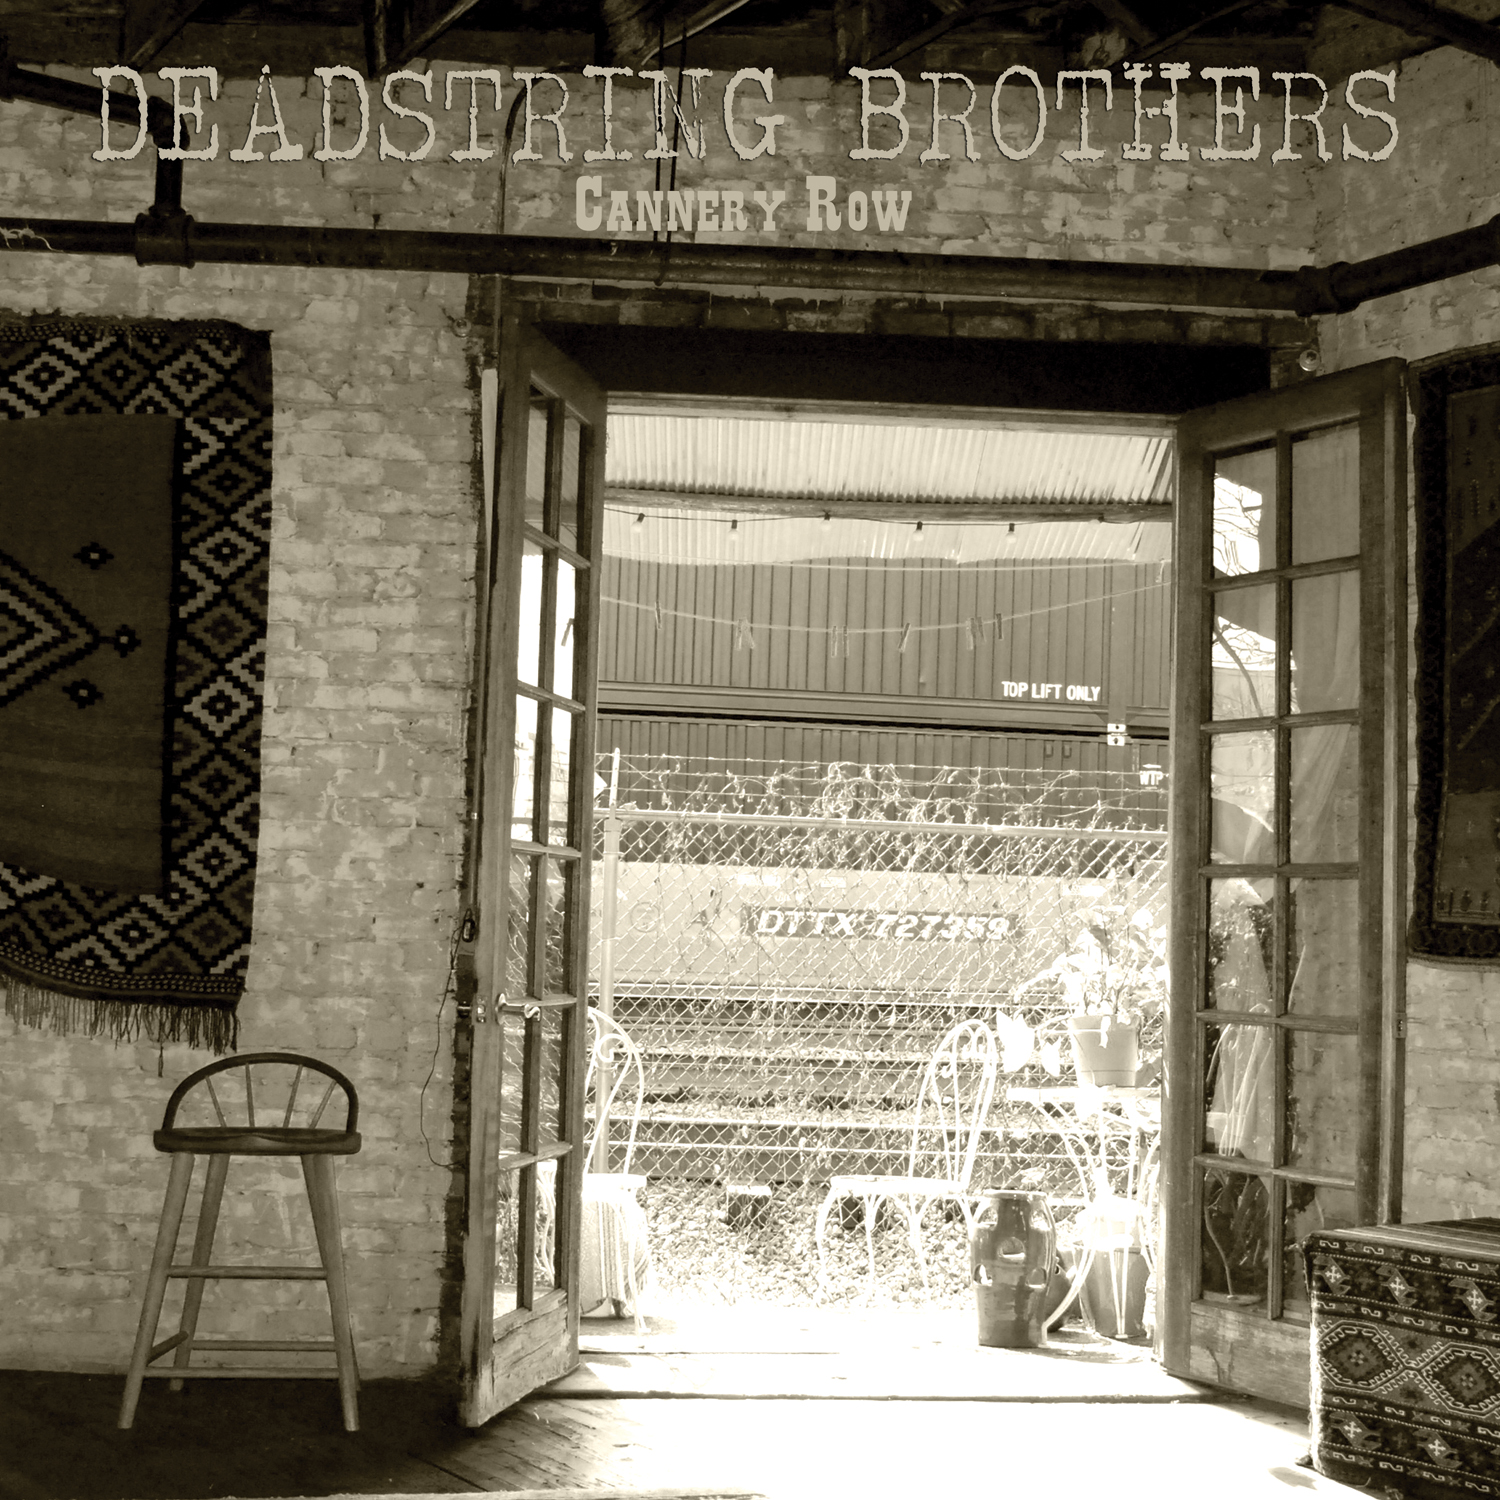 Deadstring-Brothers-Cannery-Row